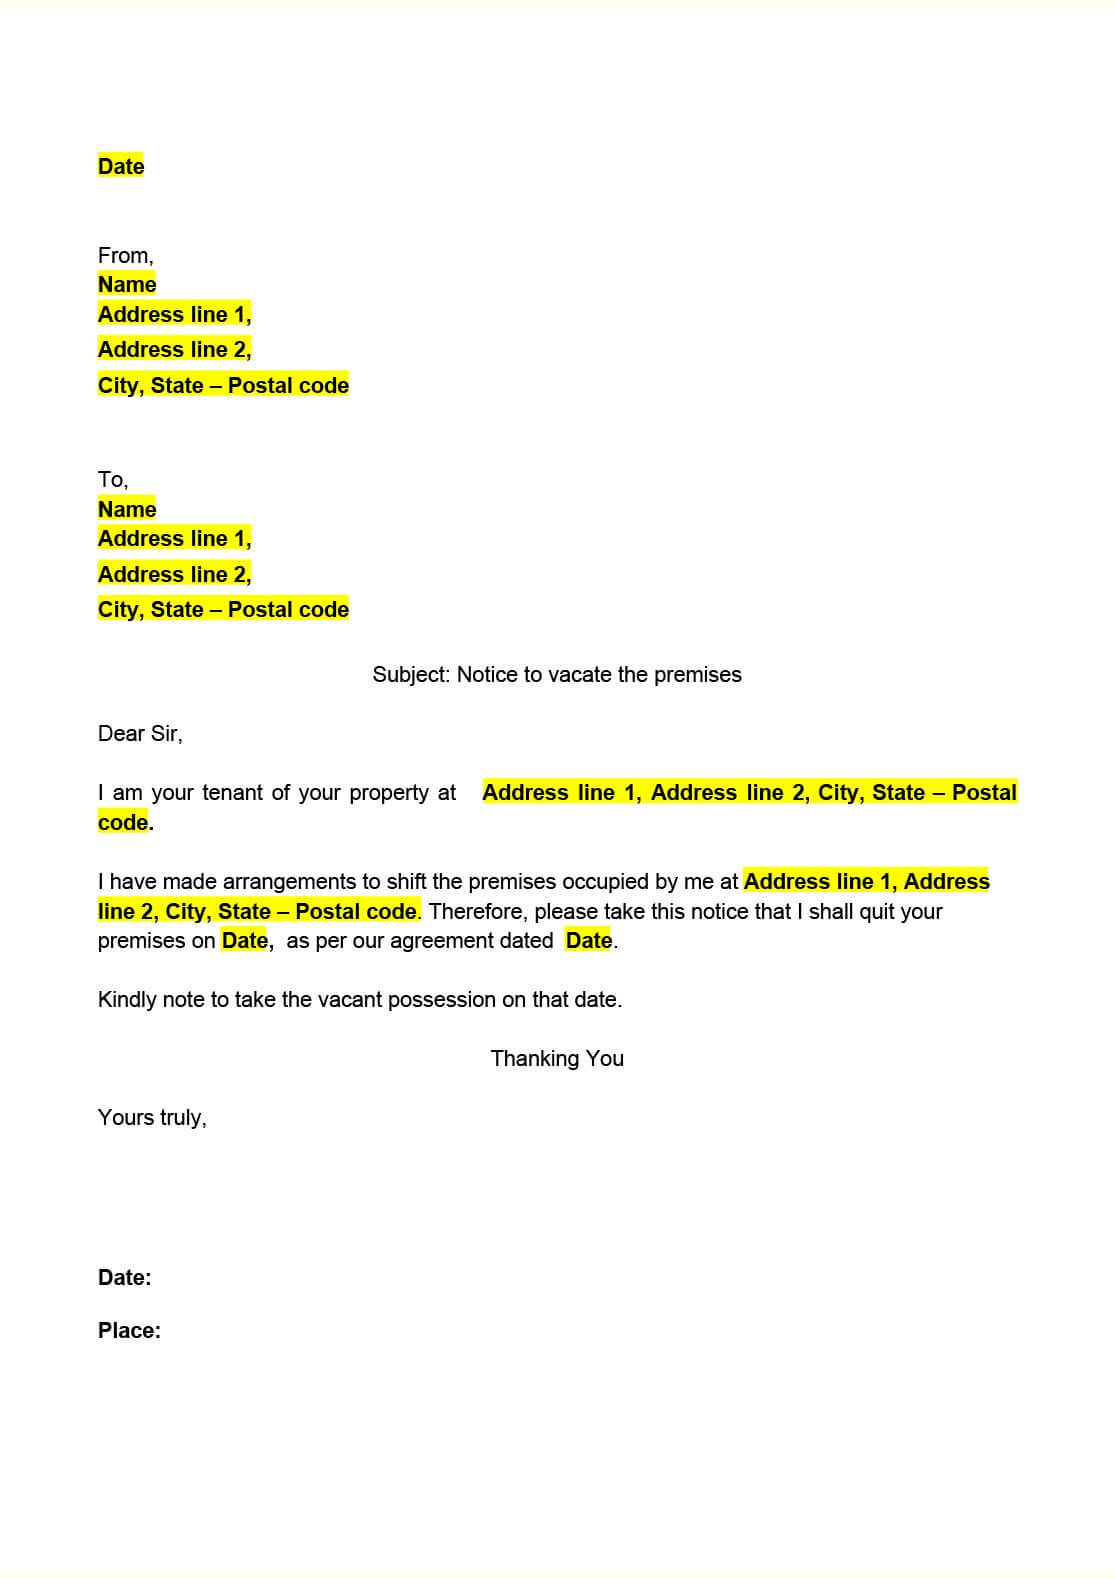 Notice to Vacate - For Tenants